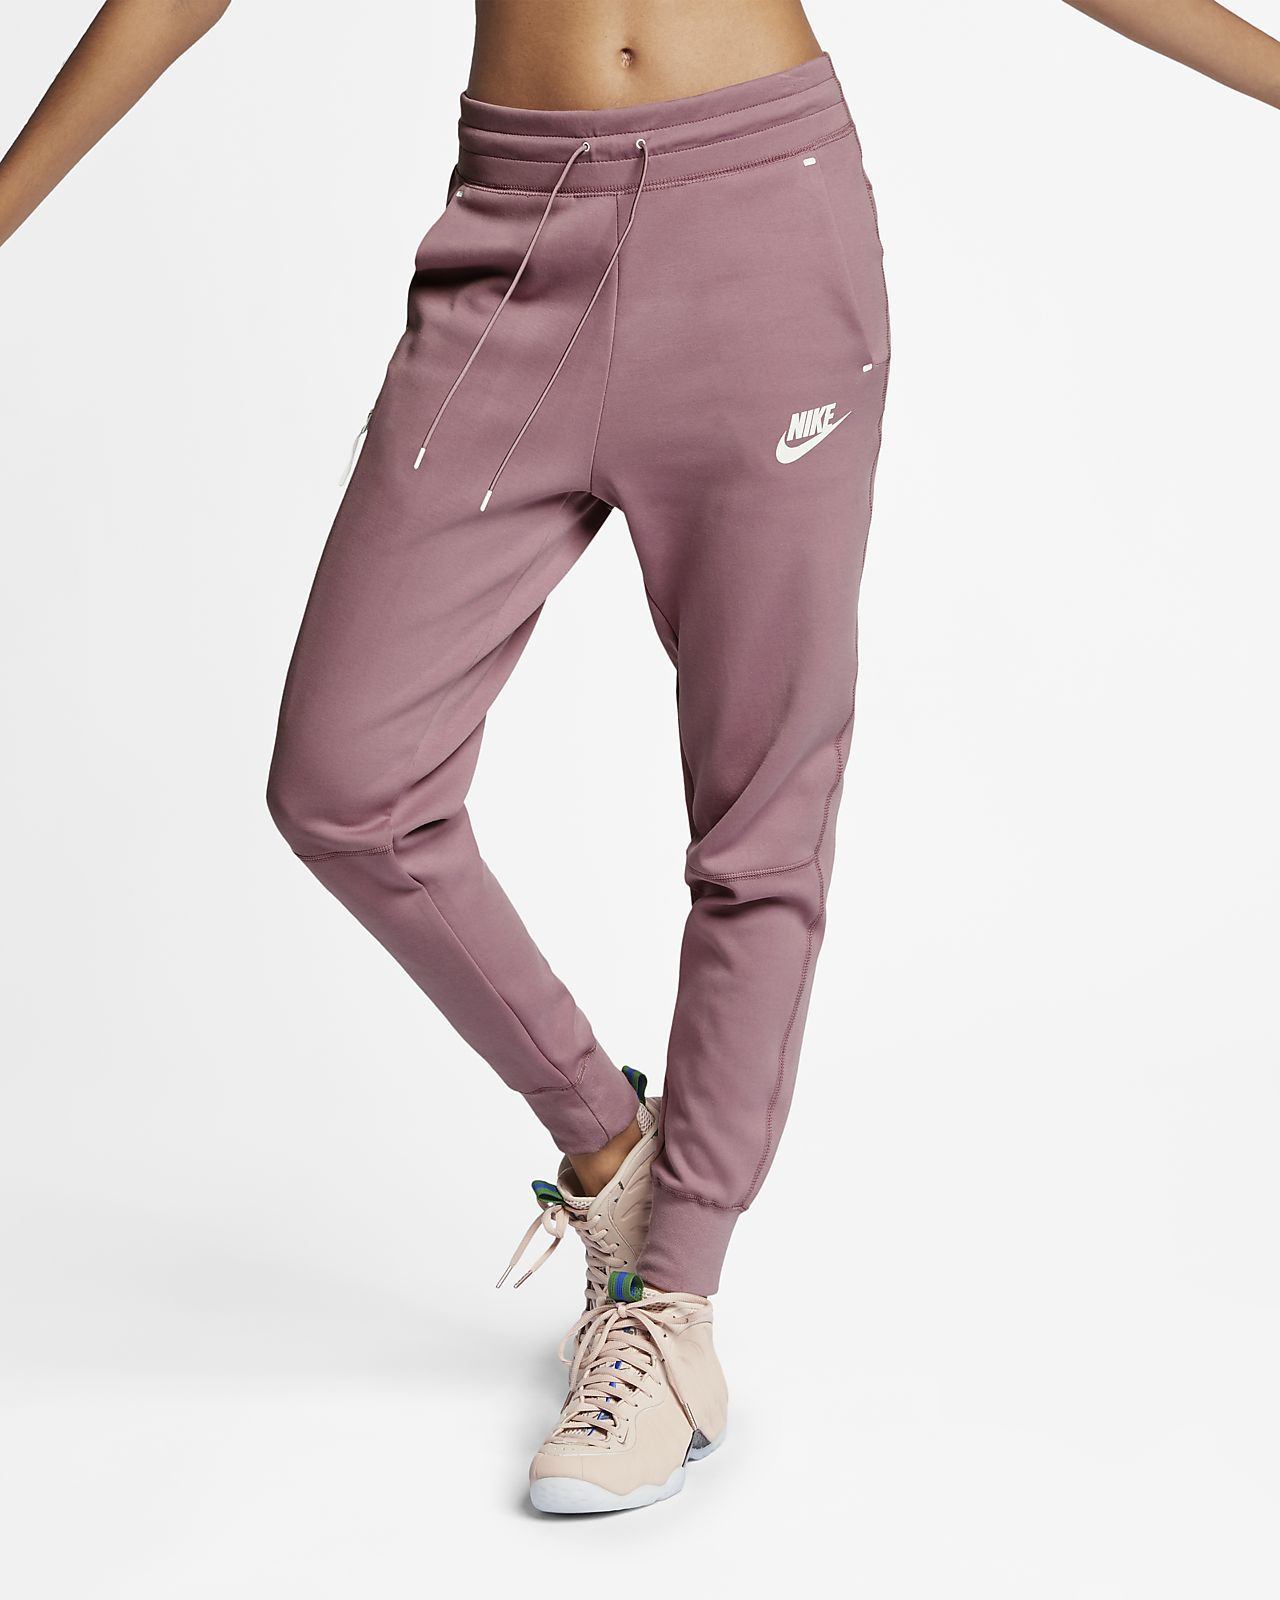 Nike Sportswear Tech Fleece Women S Pants Nike Com Pants For Women Nike Sportswear Women Nike Sportswear